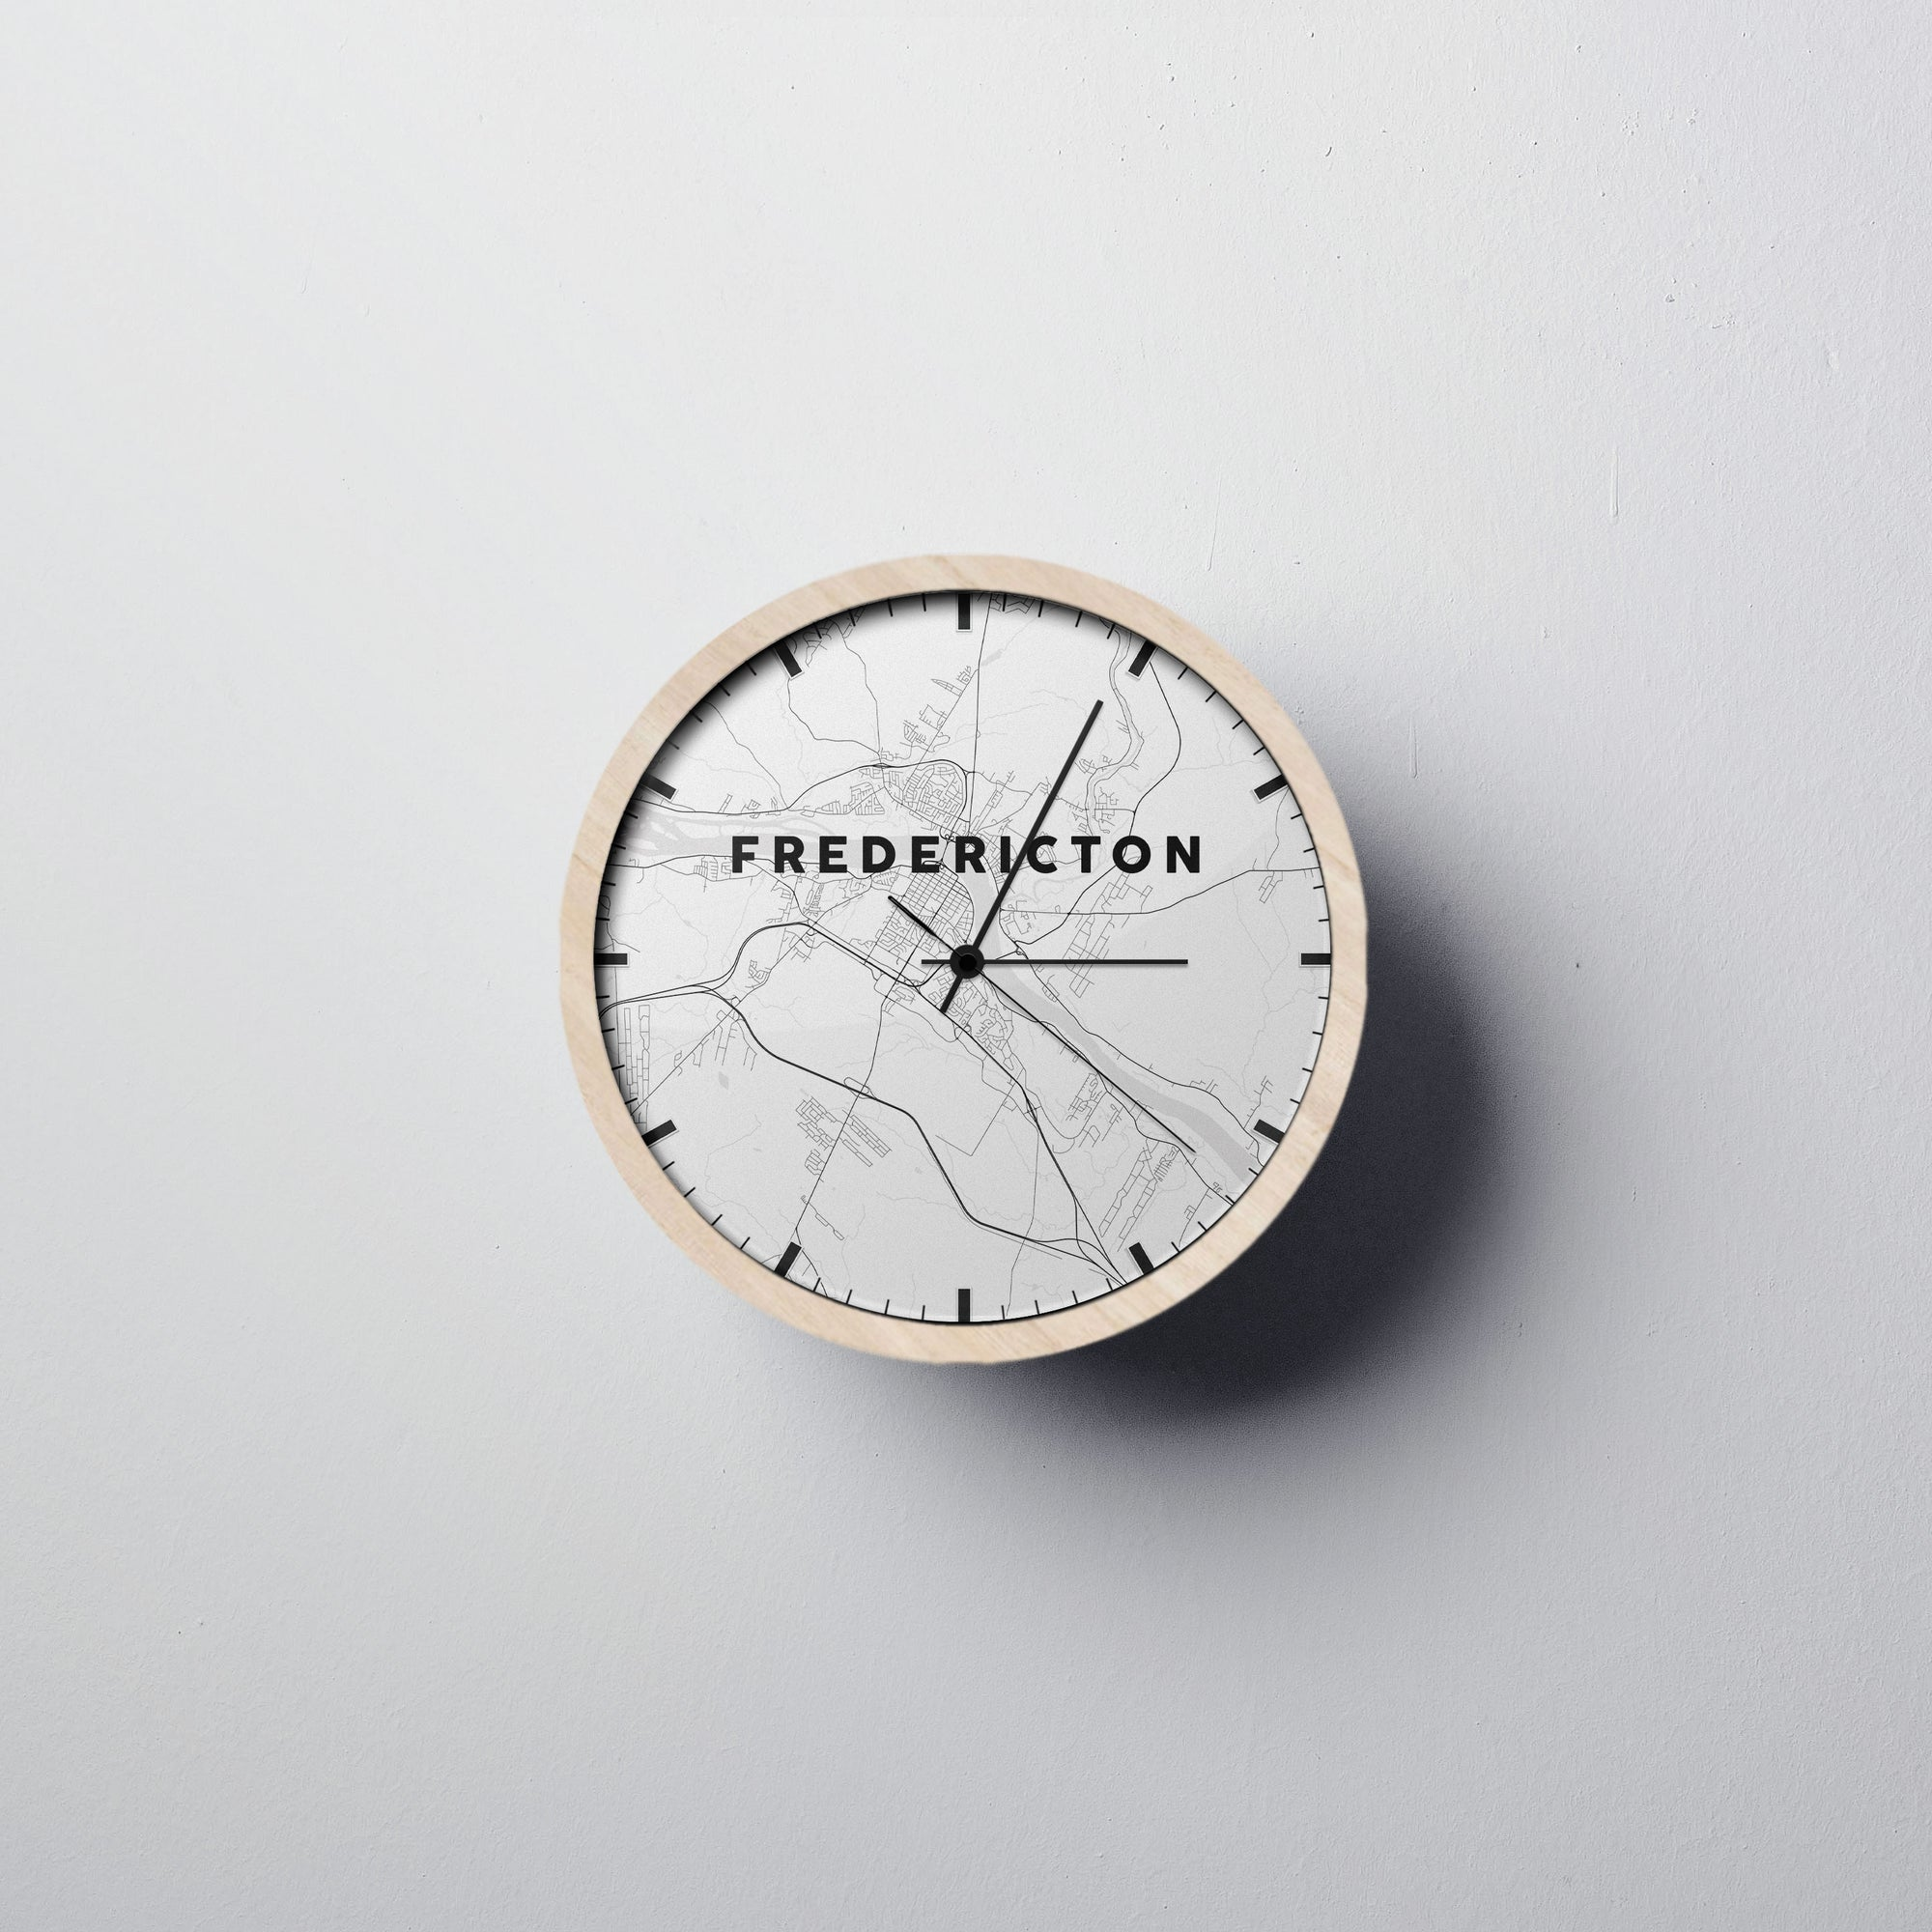 Fredericton Wall Clock - Point Two Design